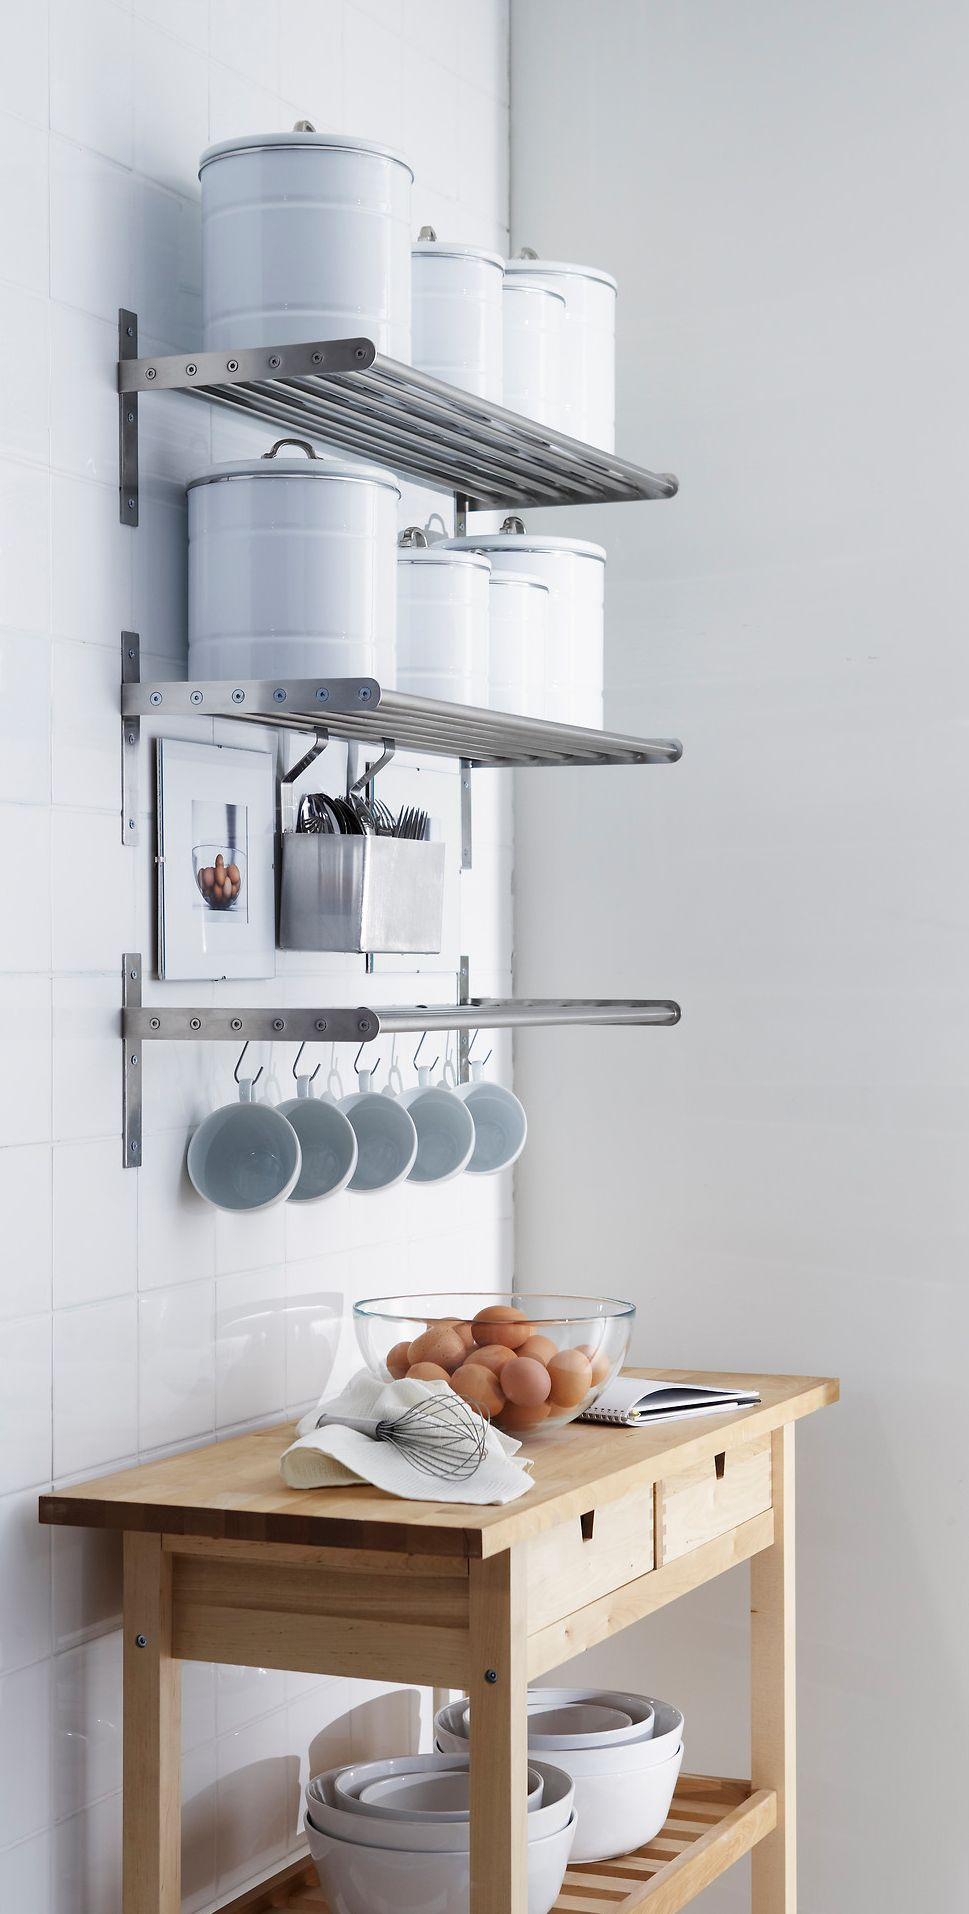 65 ingenious kitchen organization tips and storage ideas rh homedit com kitchen storage shelves ideas hanging storage shelves kitchen